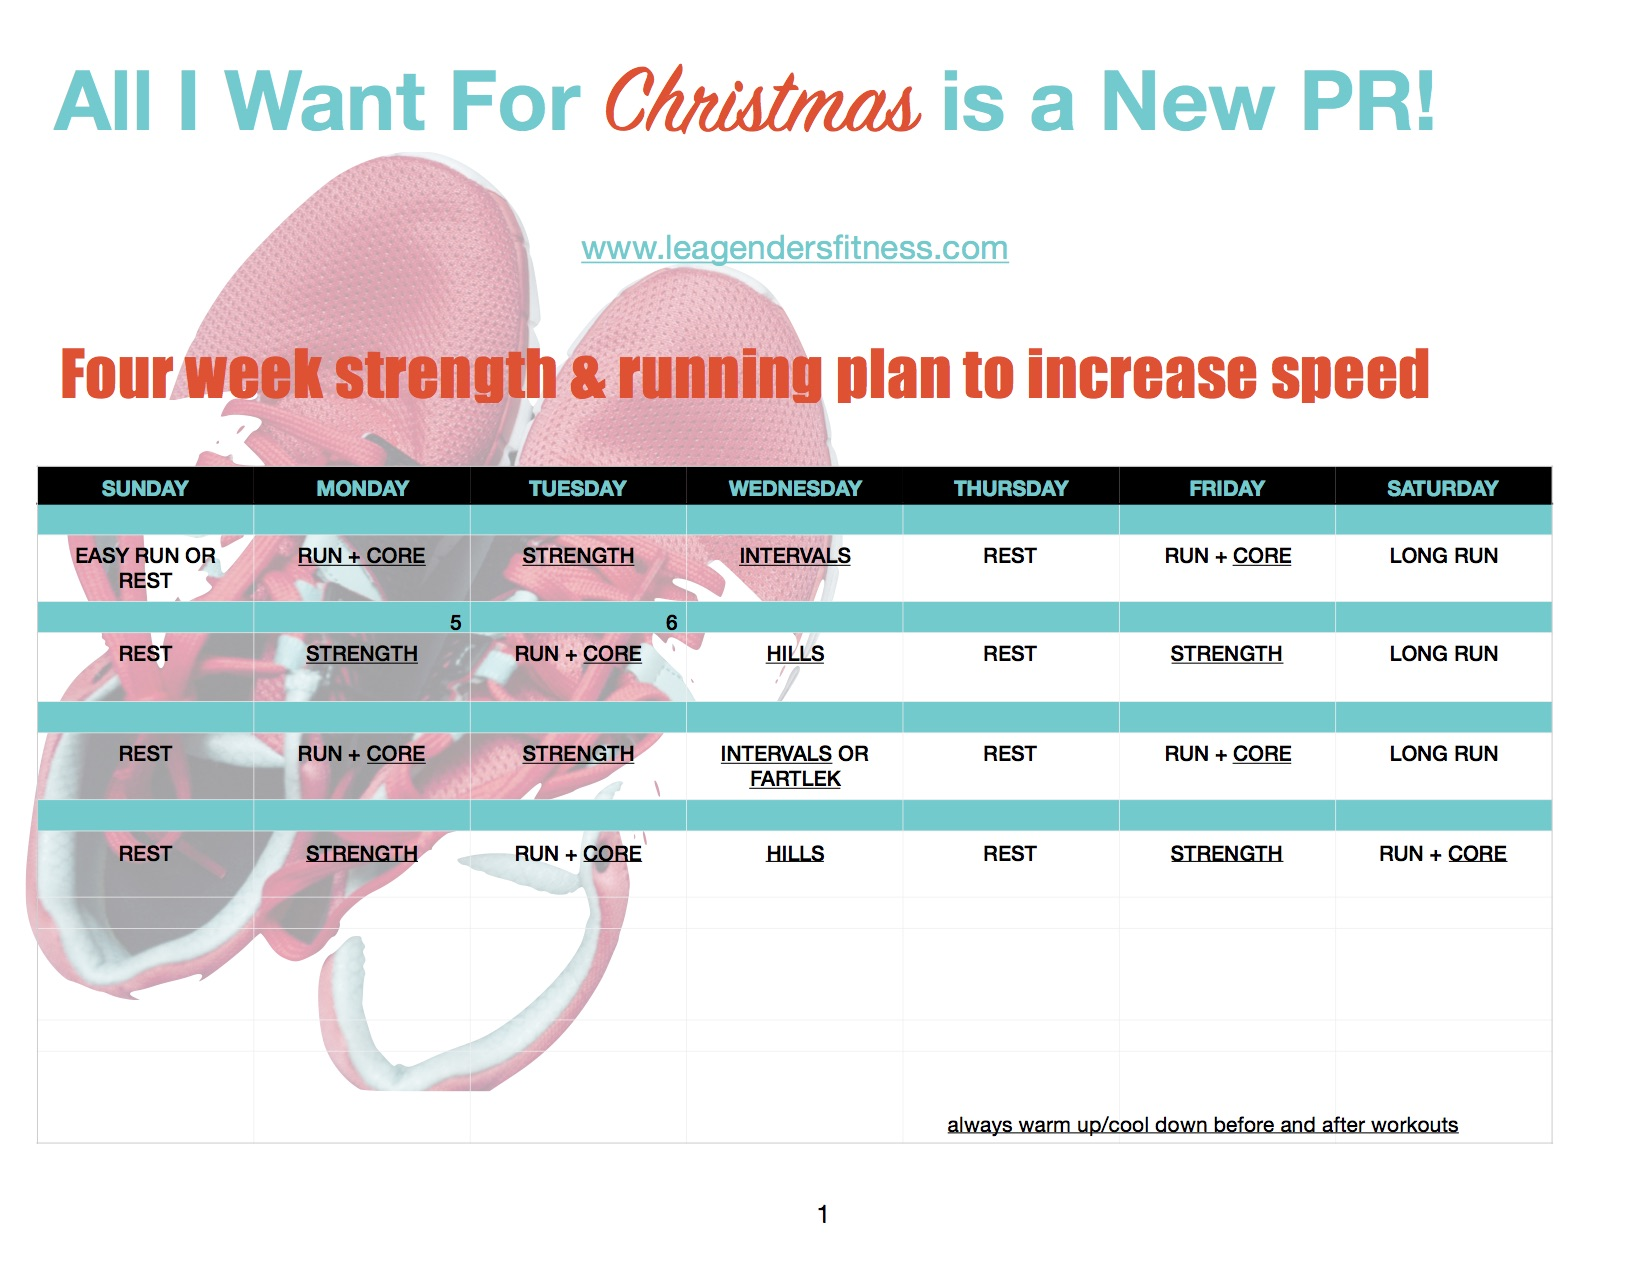 Download the training schedule below to improve your speed by Christmas